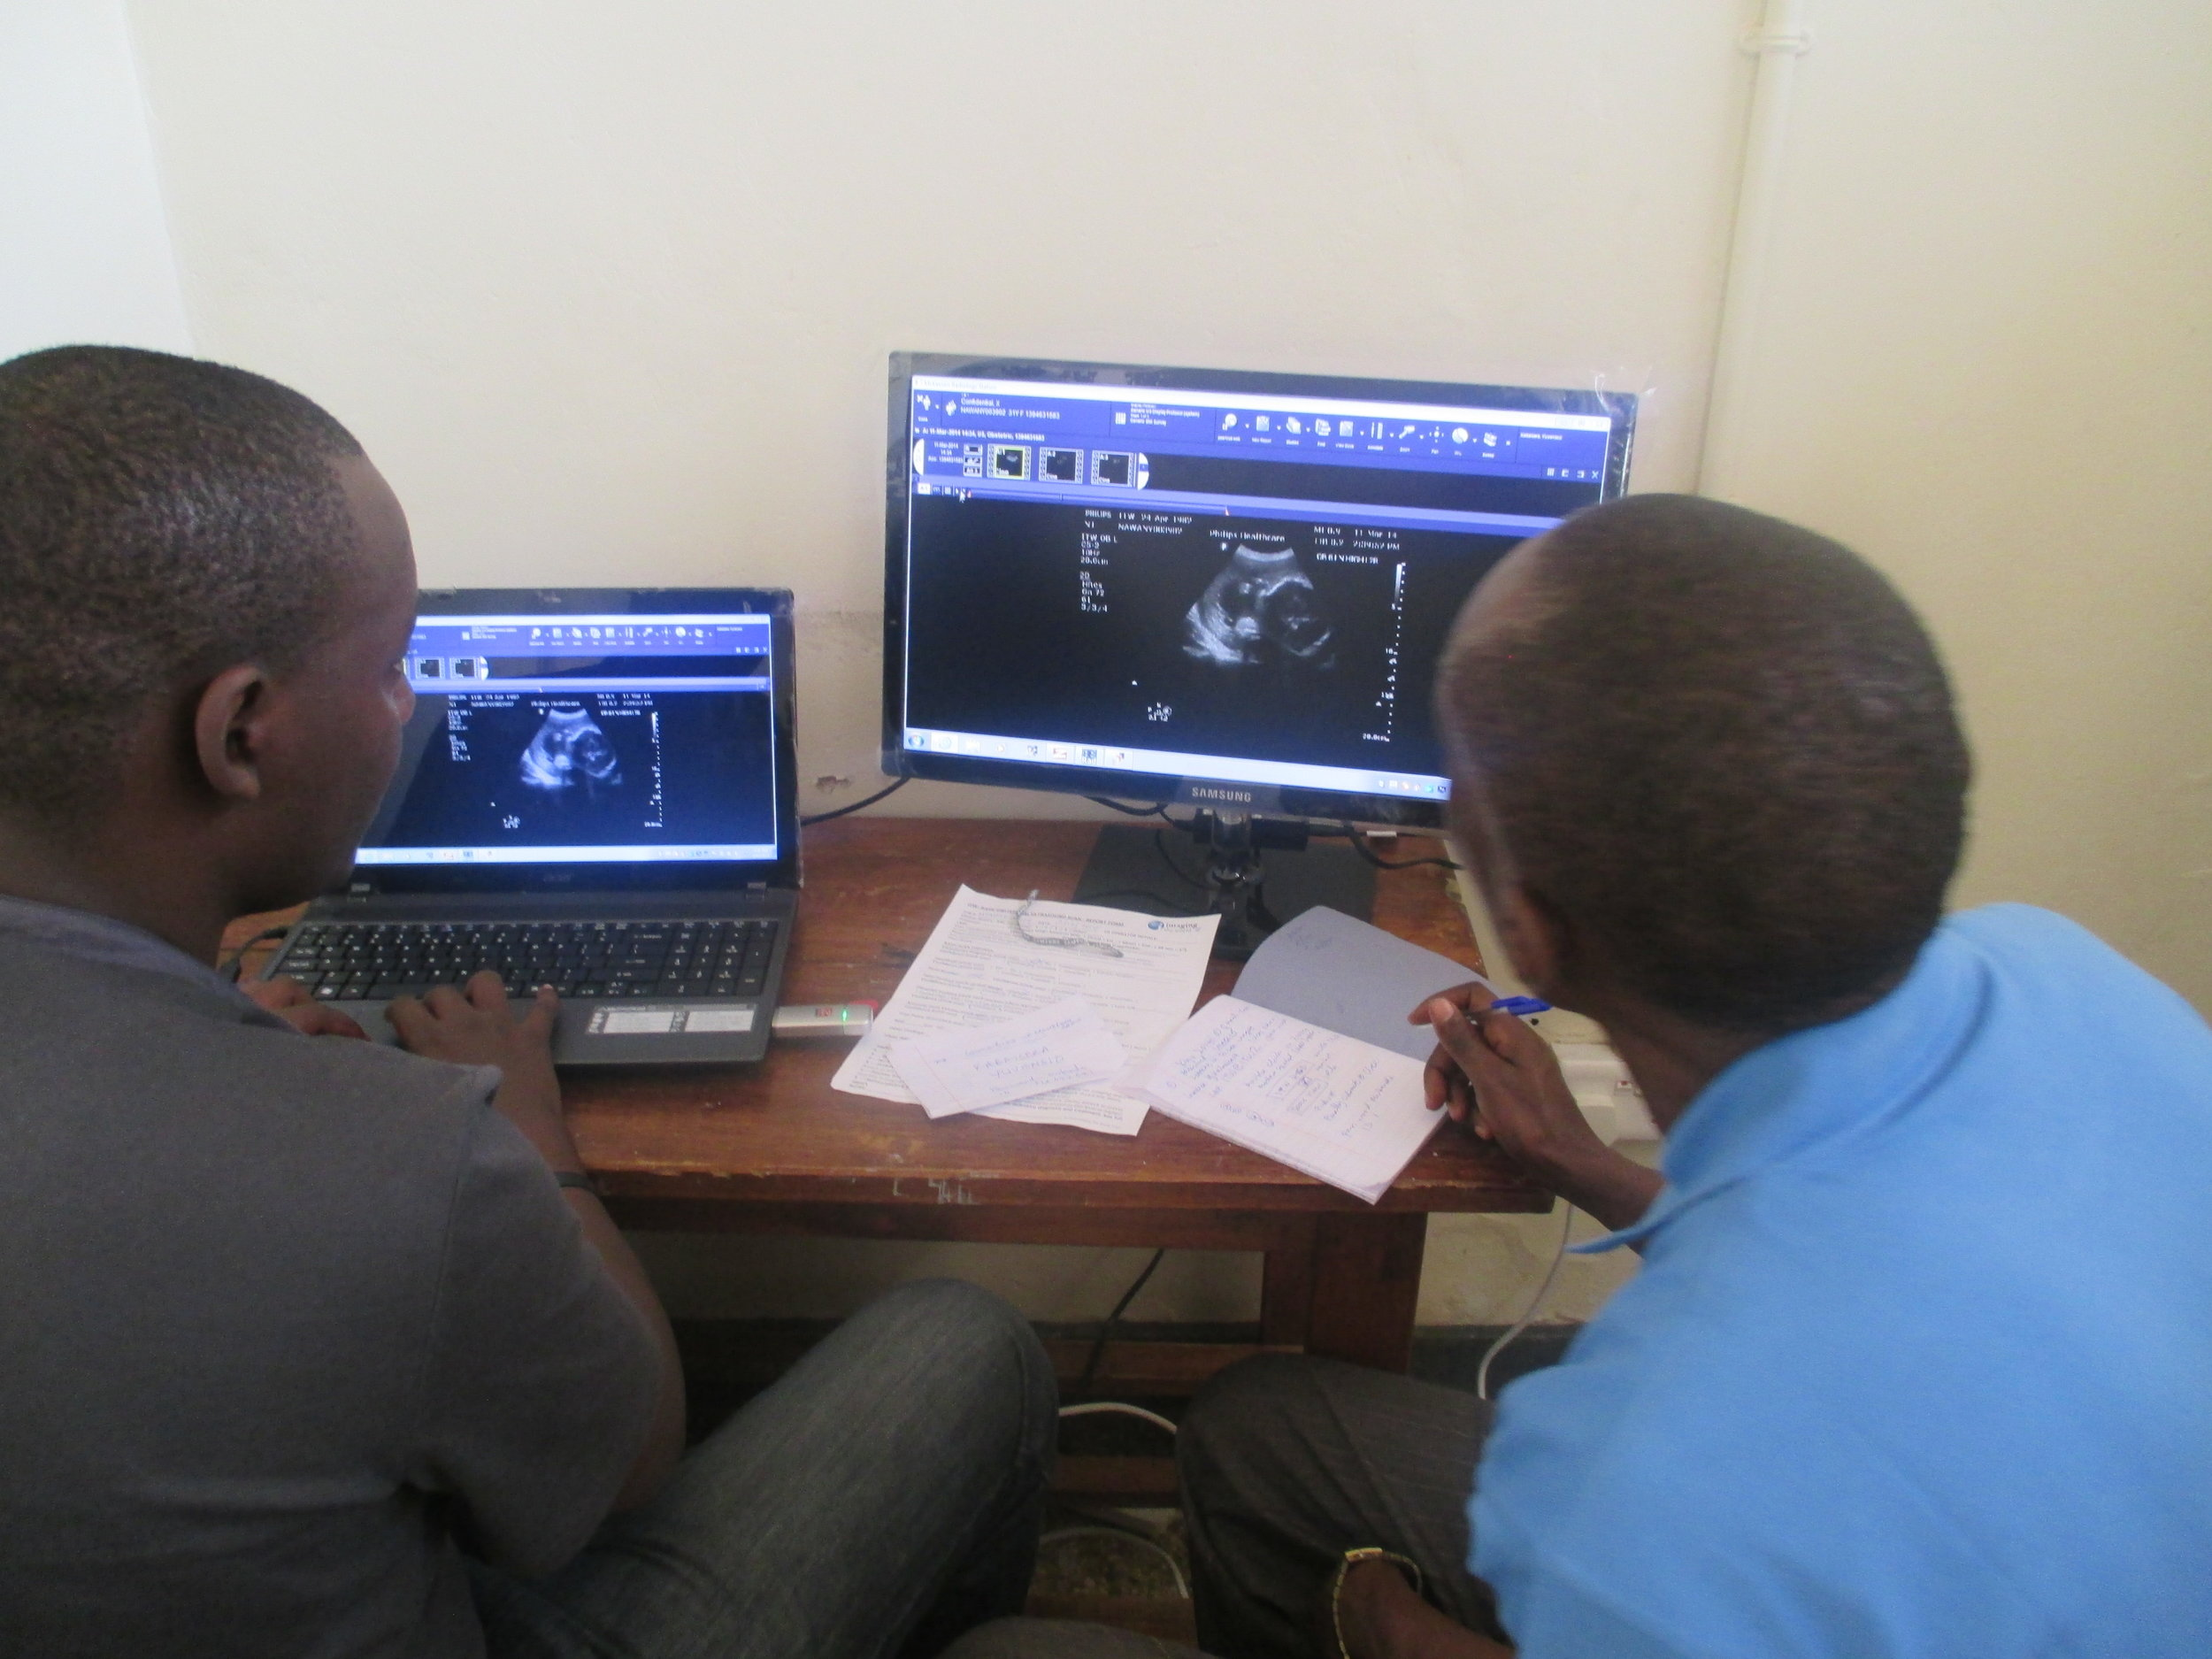 Reviewing images electronically sent securely from Kasambya to Mubende Hospital. All patient information is confidential in the ITW system.